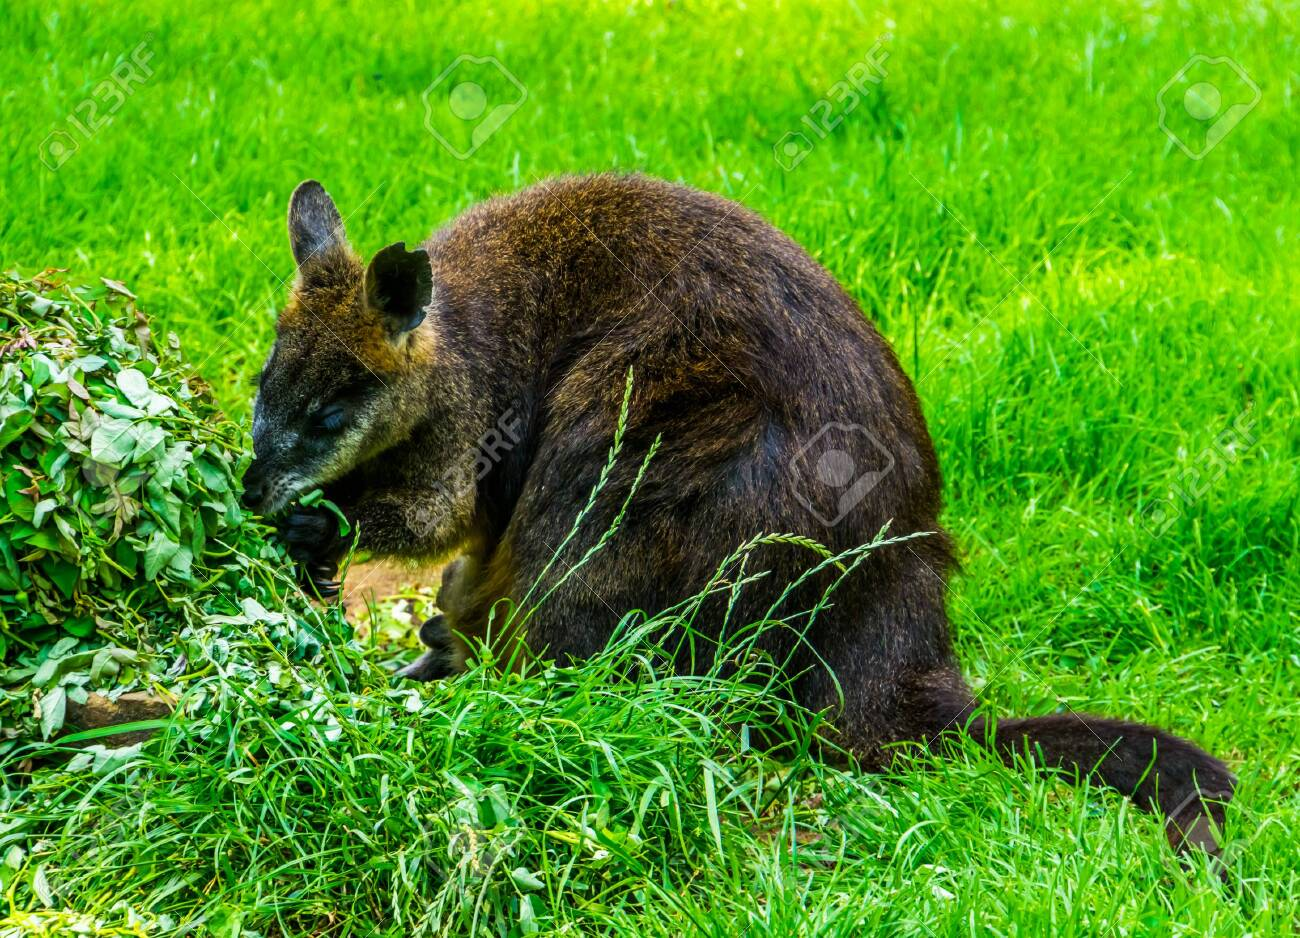 Swamp Wallaby Eating Plants In Closeup Popular Marsupial Specie Stock Photo Picture And Royalty Free Image Image 130817319